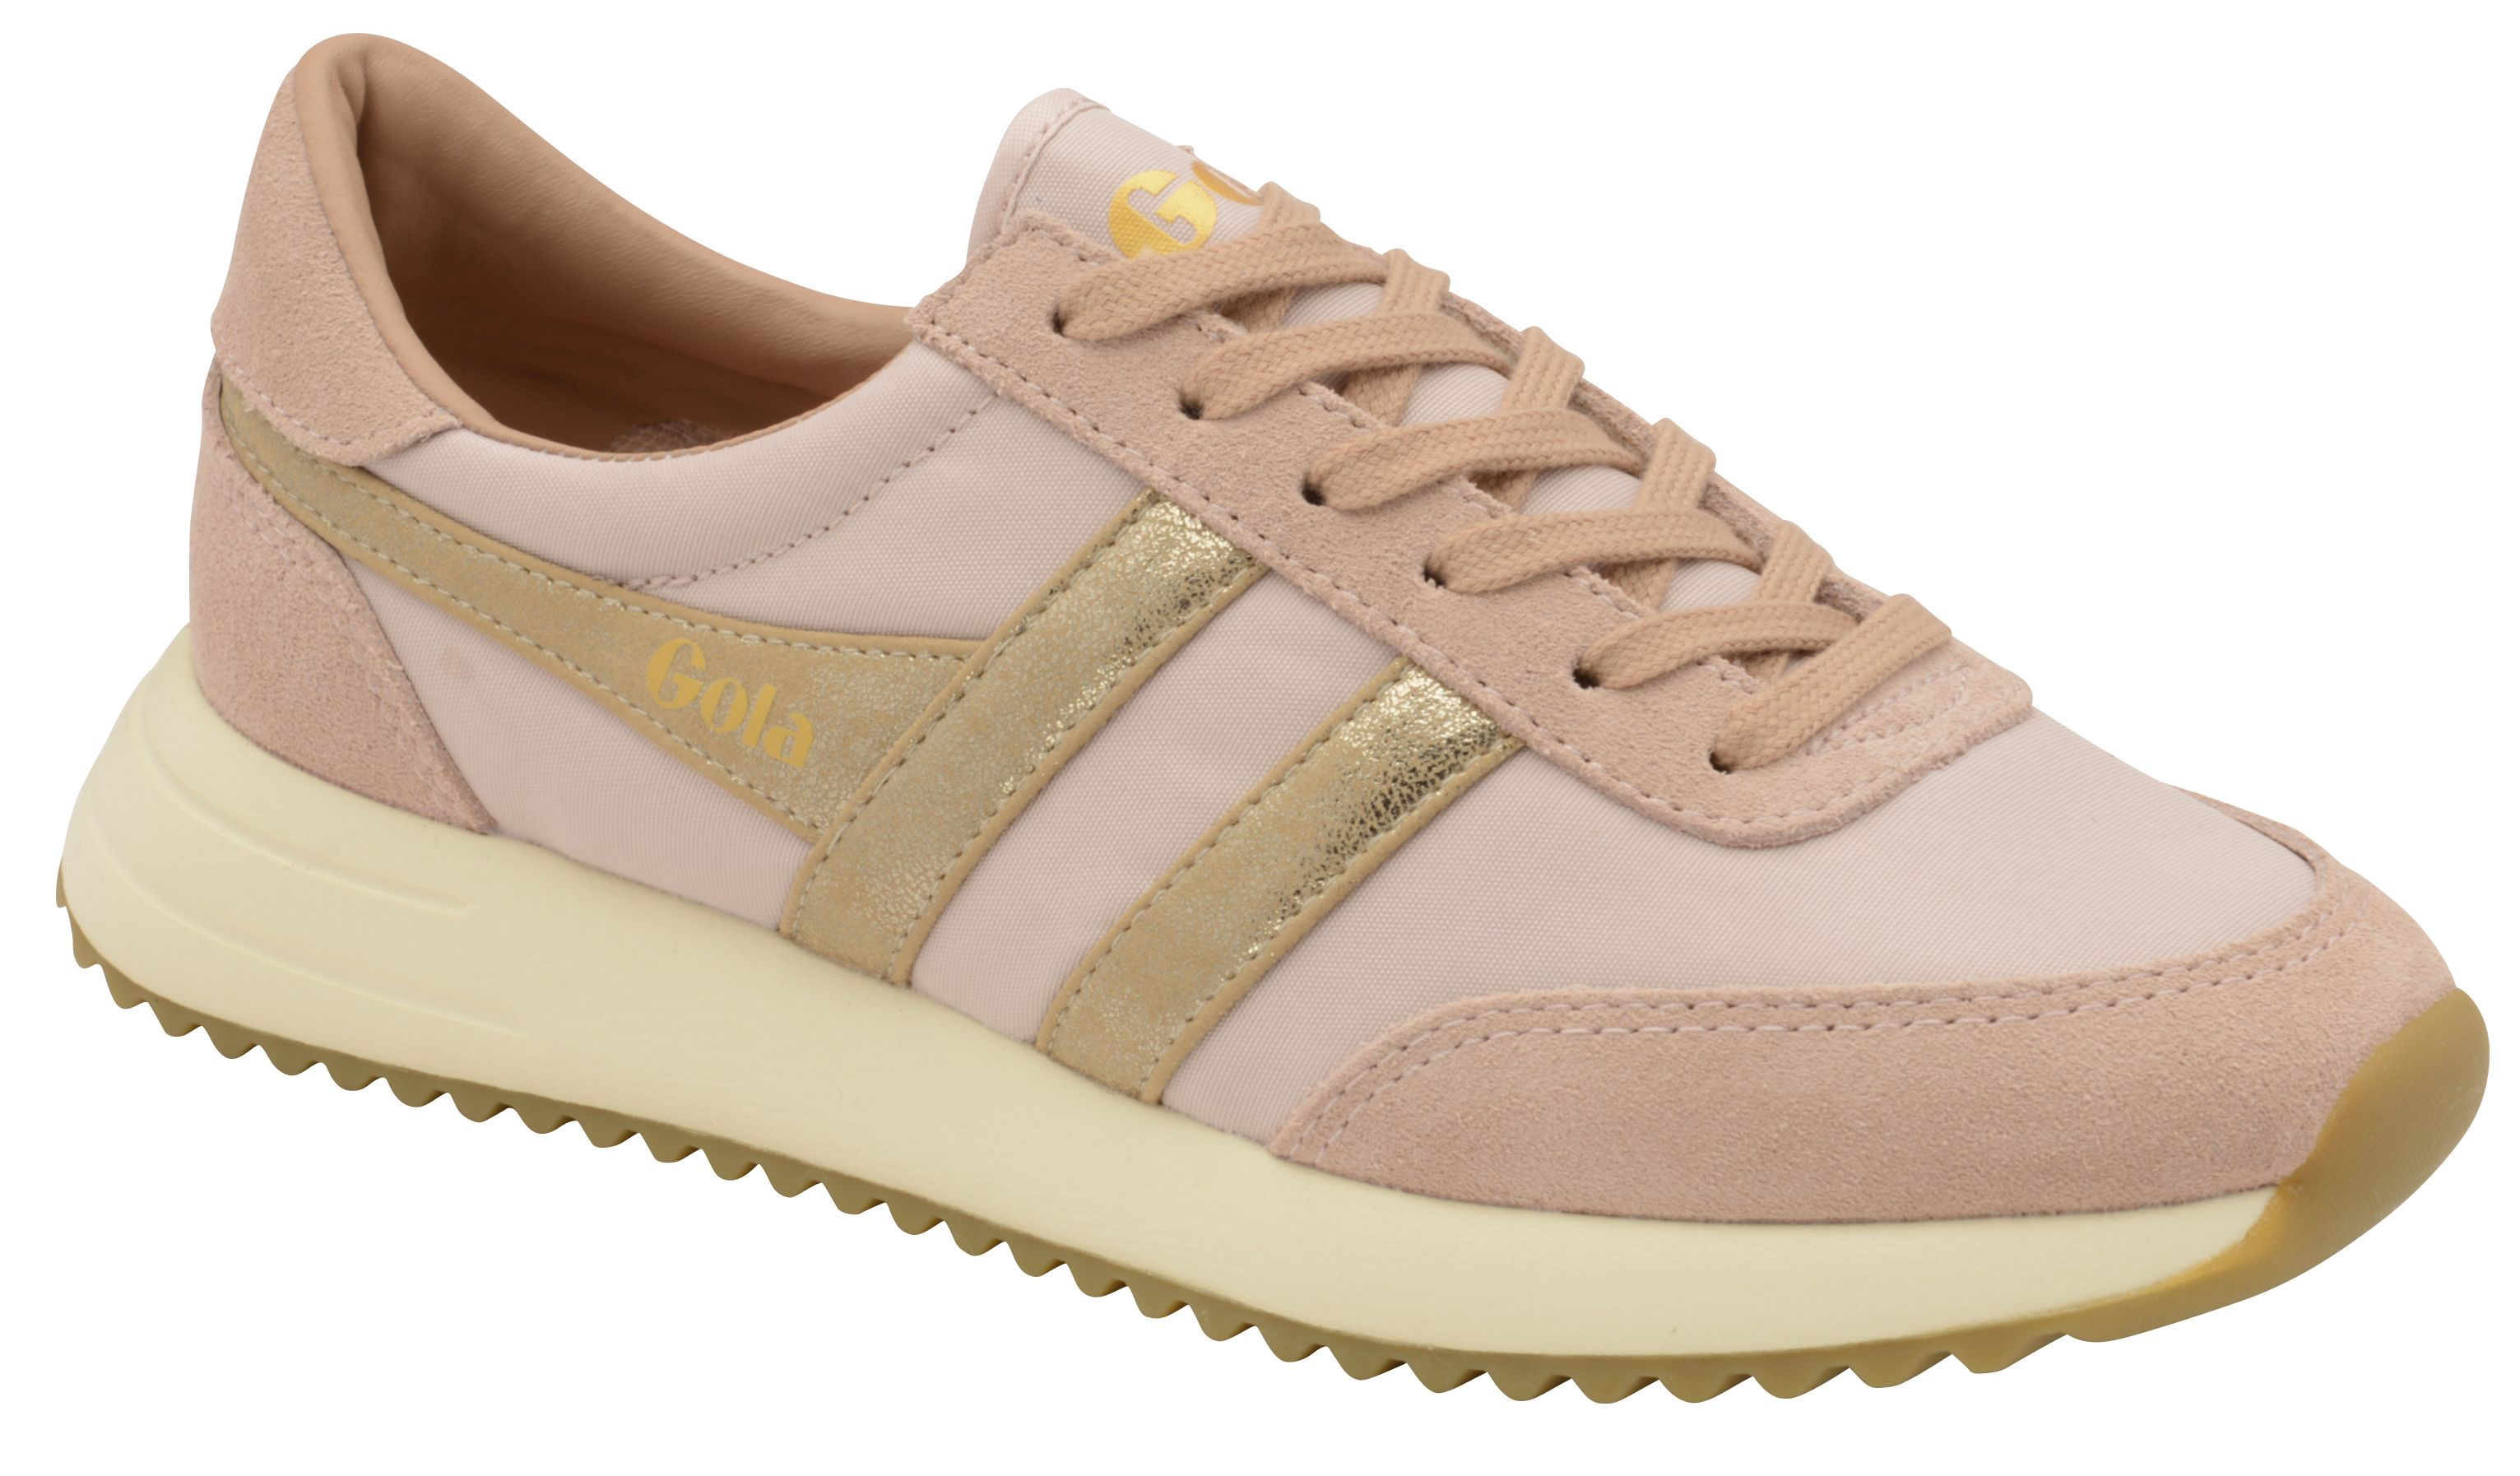 Gola Montreal Mirror Lace Up Trainers, Pink